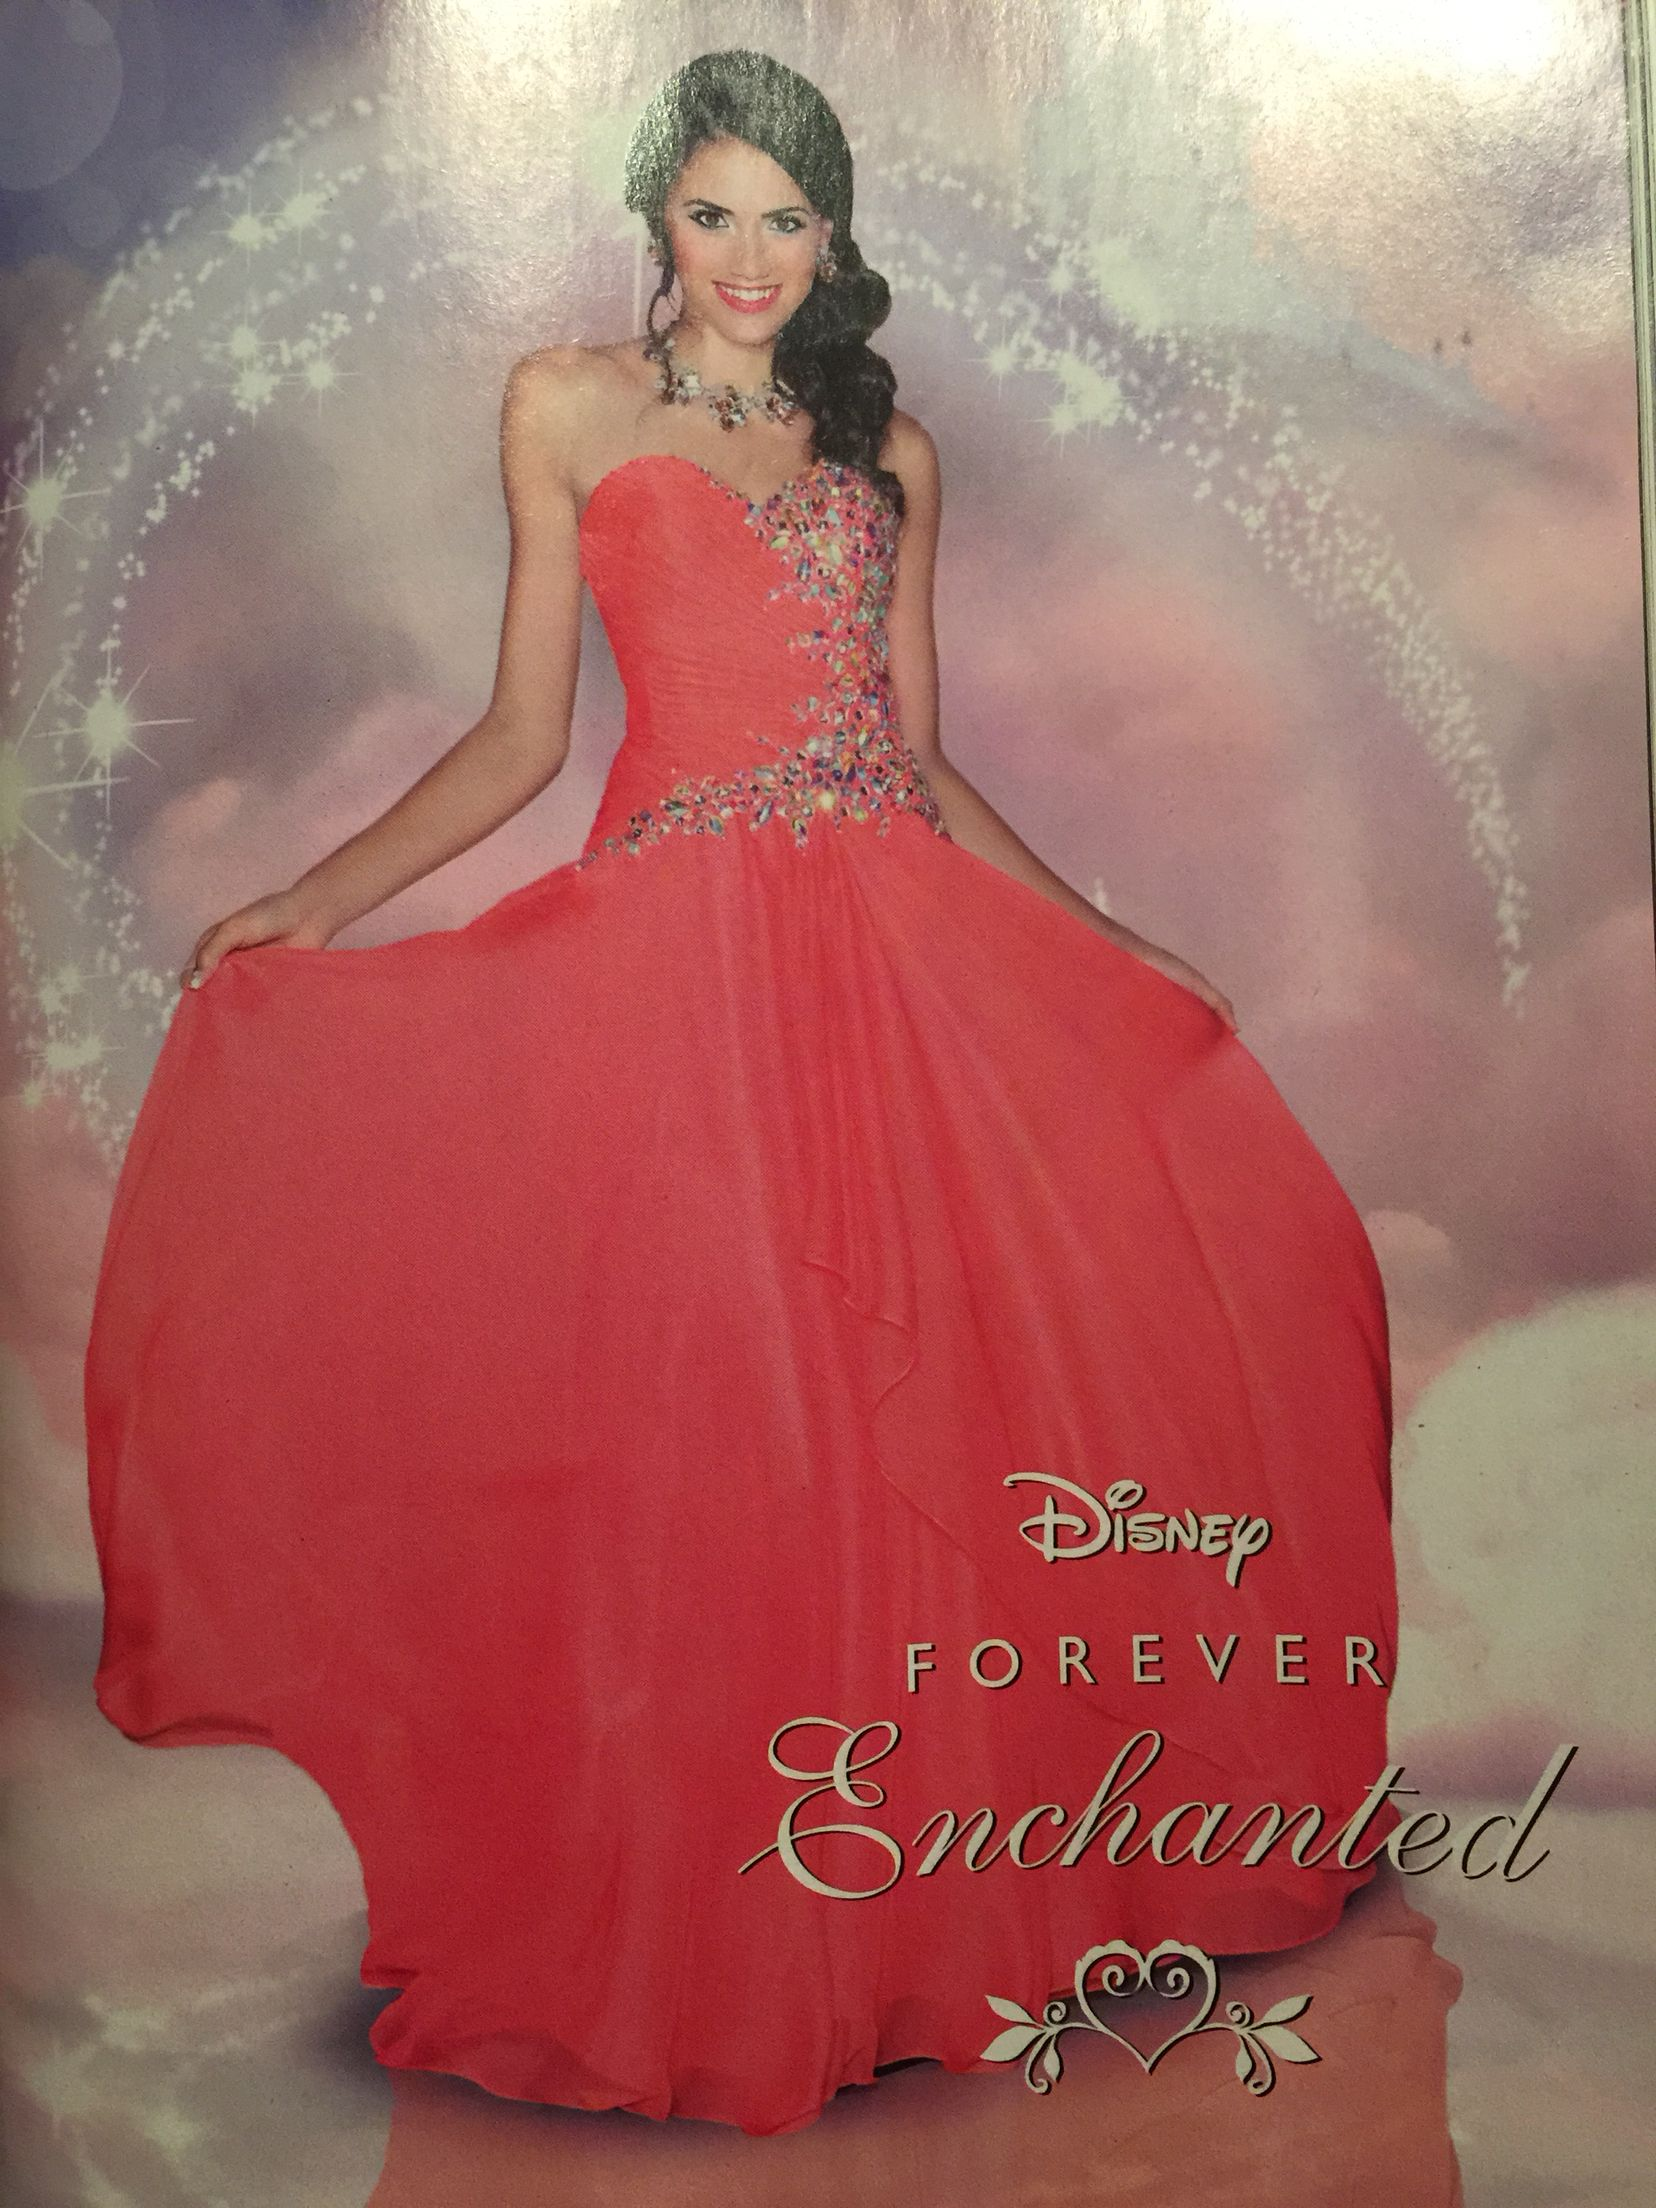 Forever Enchanted Prom Dress